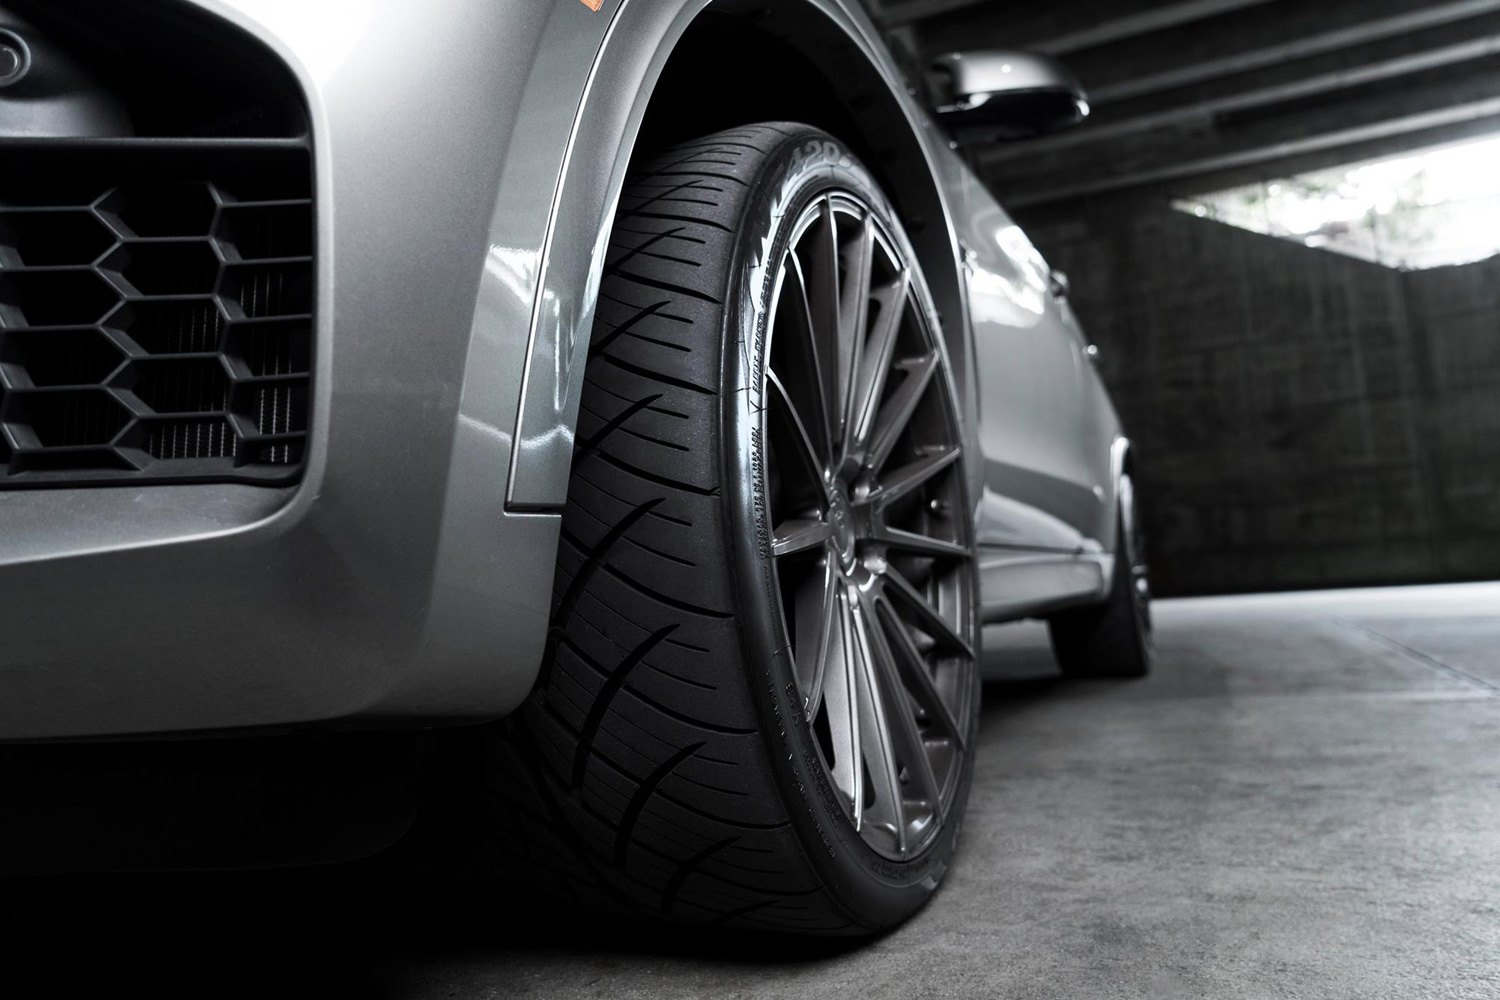 Nitto 174 Nt420s Tires